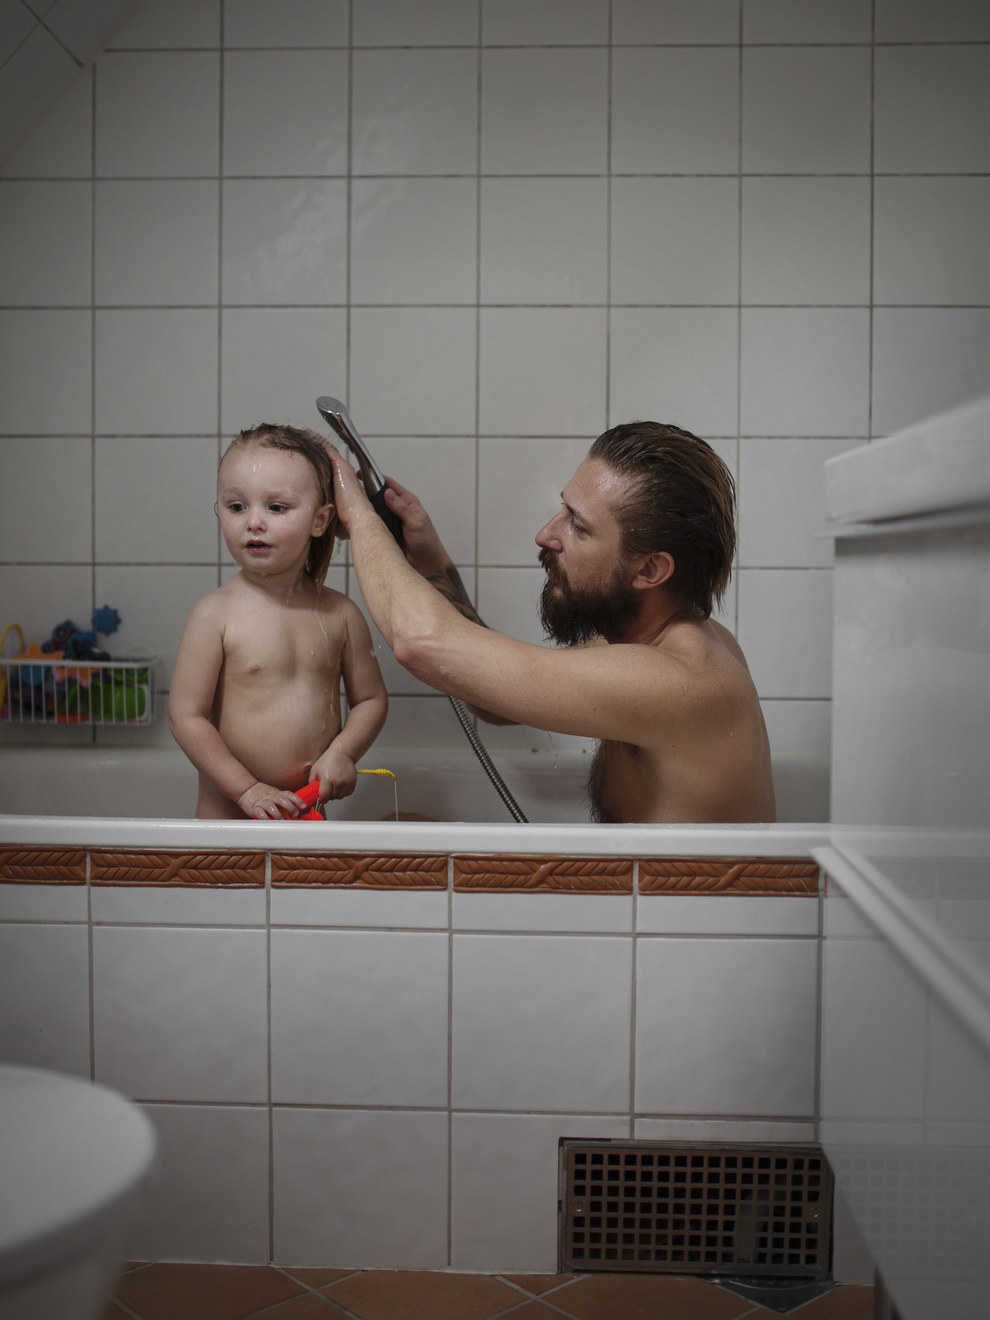 swedish_dads_4_photo_by_johan_bavman